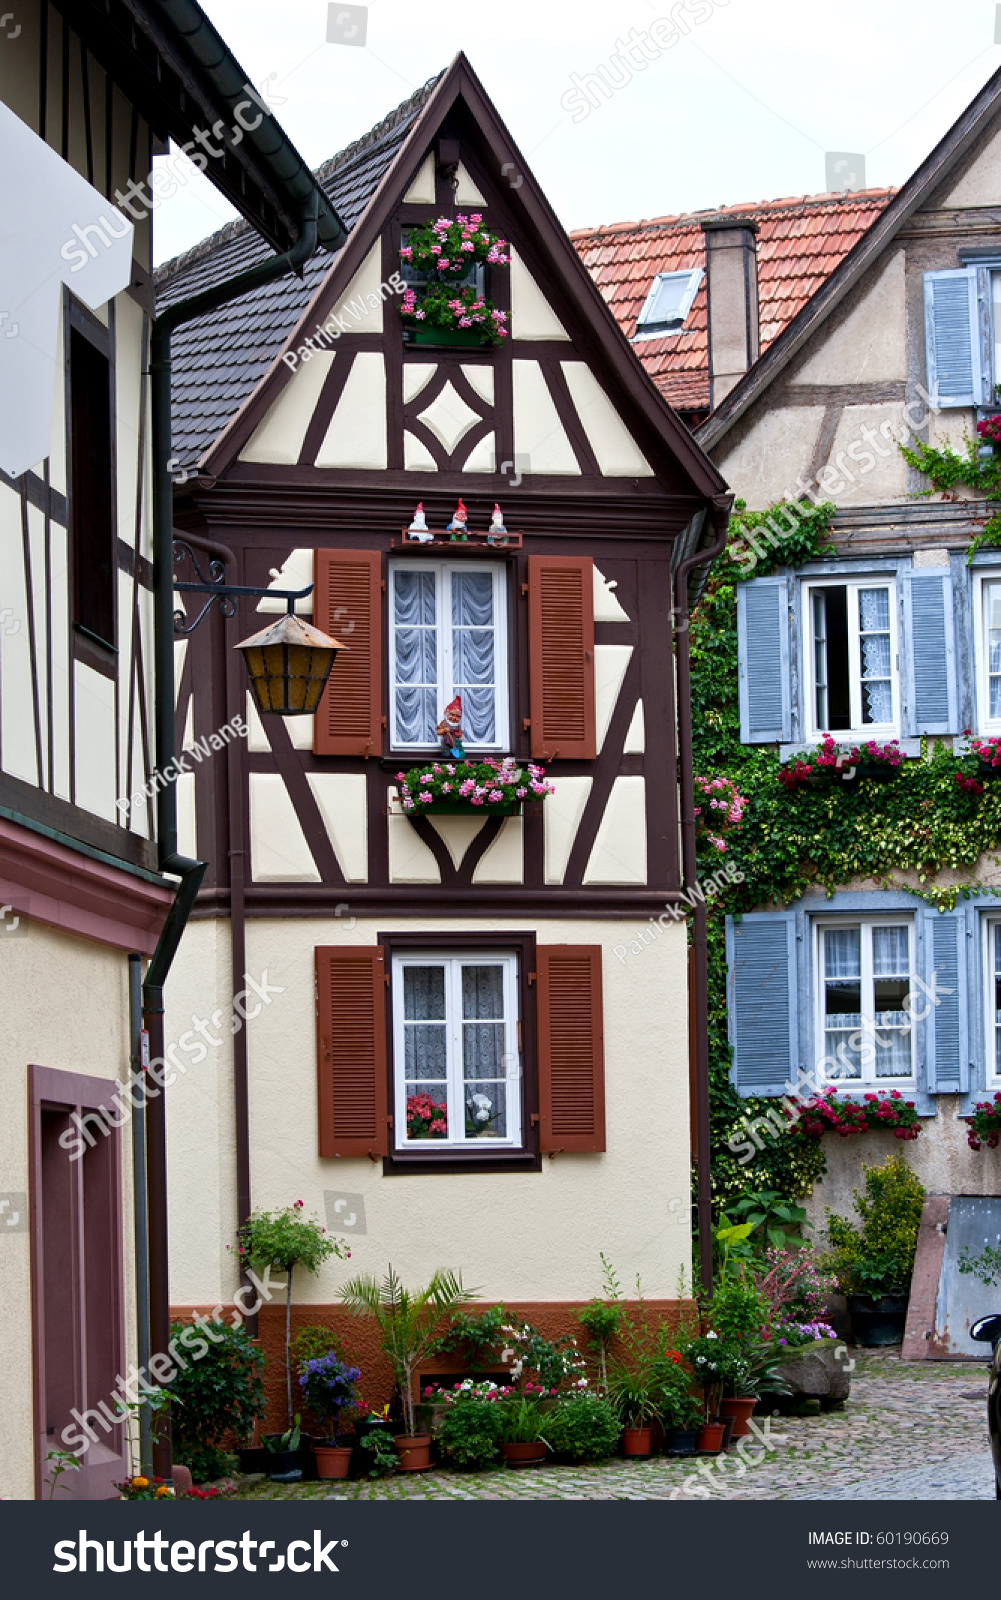 German House Designs: Traditional Old German Houses Timber Framing Stock Photo